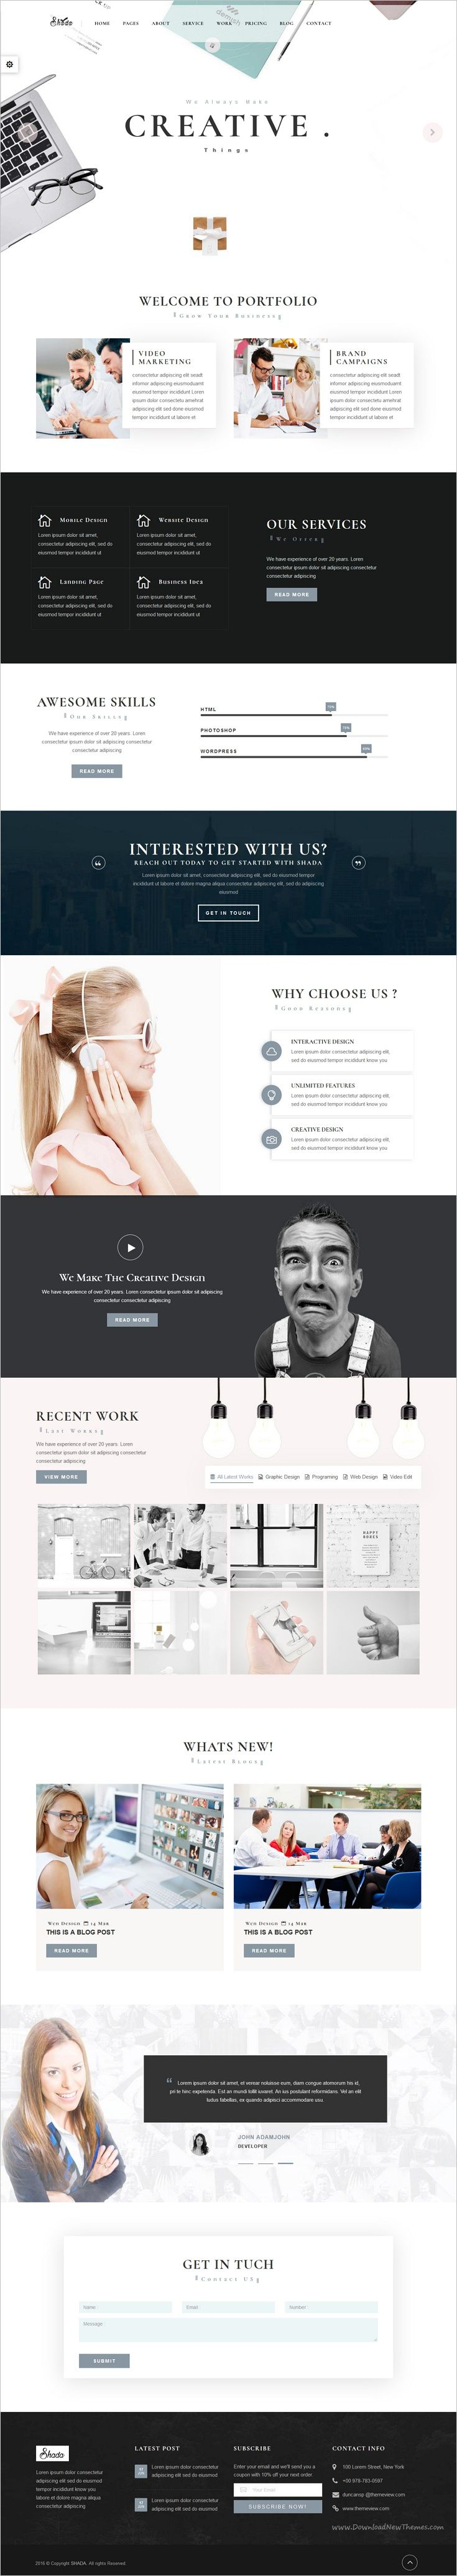 Shada is beautifully design premium #bootstrap HTML template for multipurpose‍ #agency website with 18+ unique homepage layouts download now➩  https://themeforest.net/item/shadaresponsive-marketingcontractorcorporateportfoliomedicalhair-salontraining-html-template/18929537?ref=Datasata